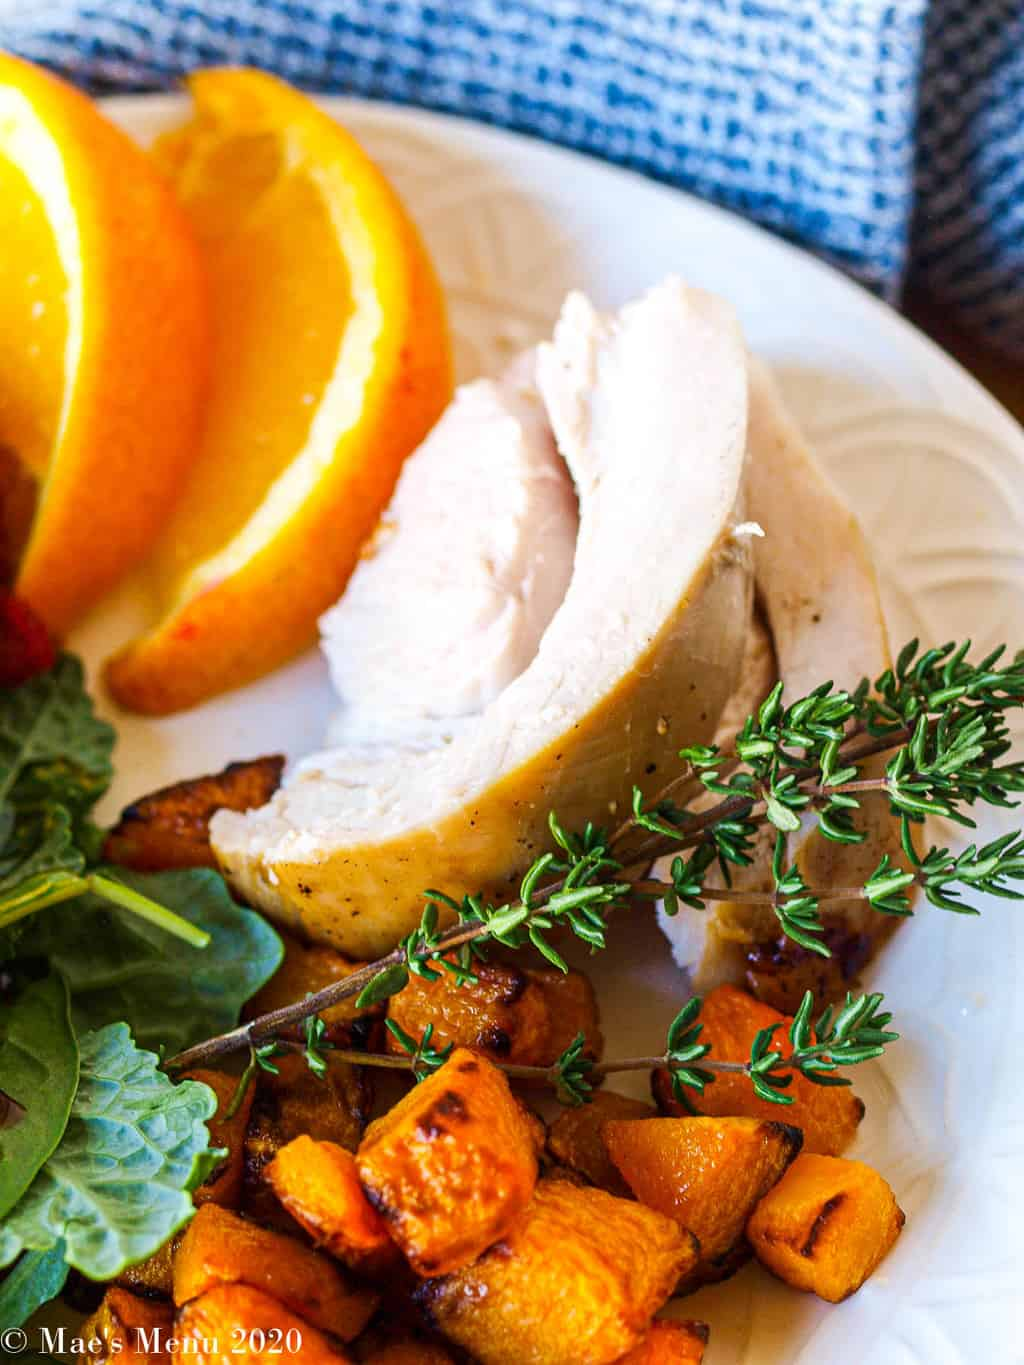 A plate of thanksgiving turkey with air fryer butternut squash on it